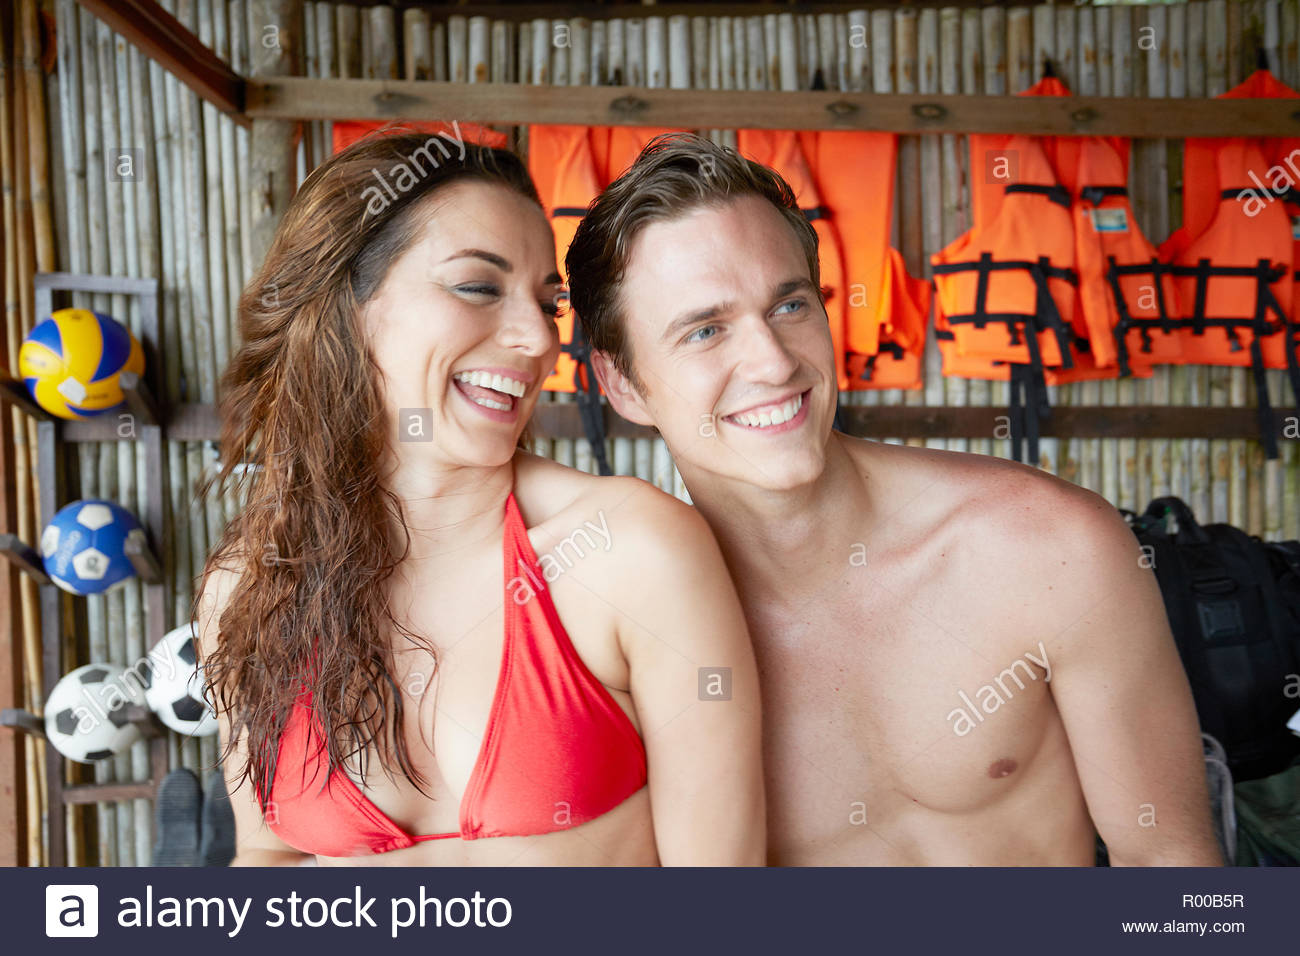 Young couple smiling in front of hanging life jackets - Stock Image